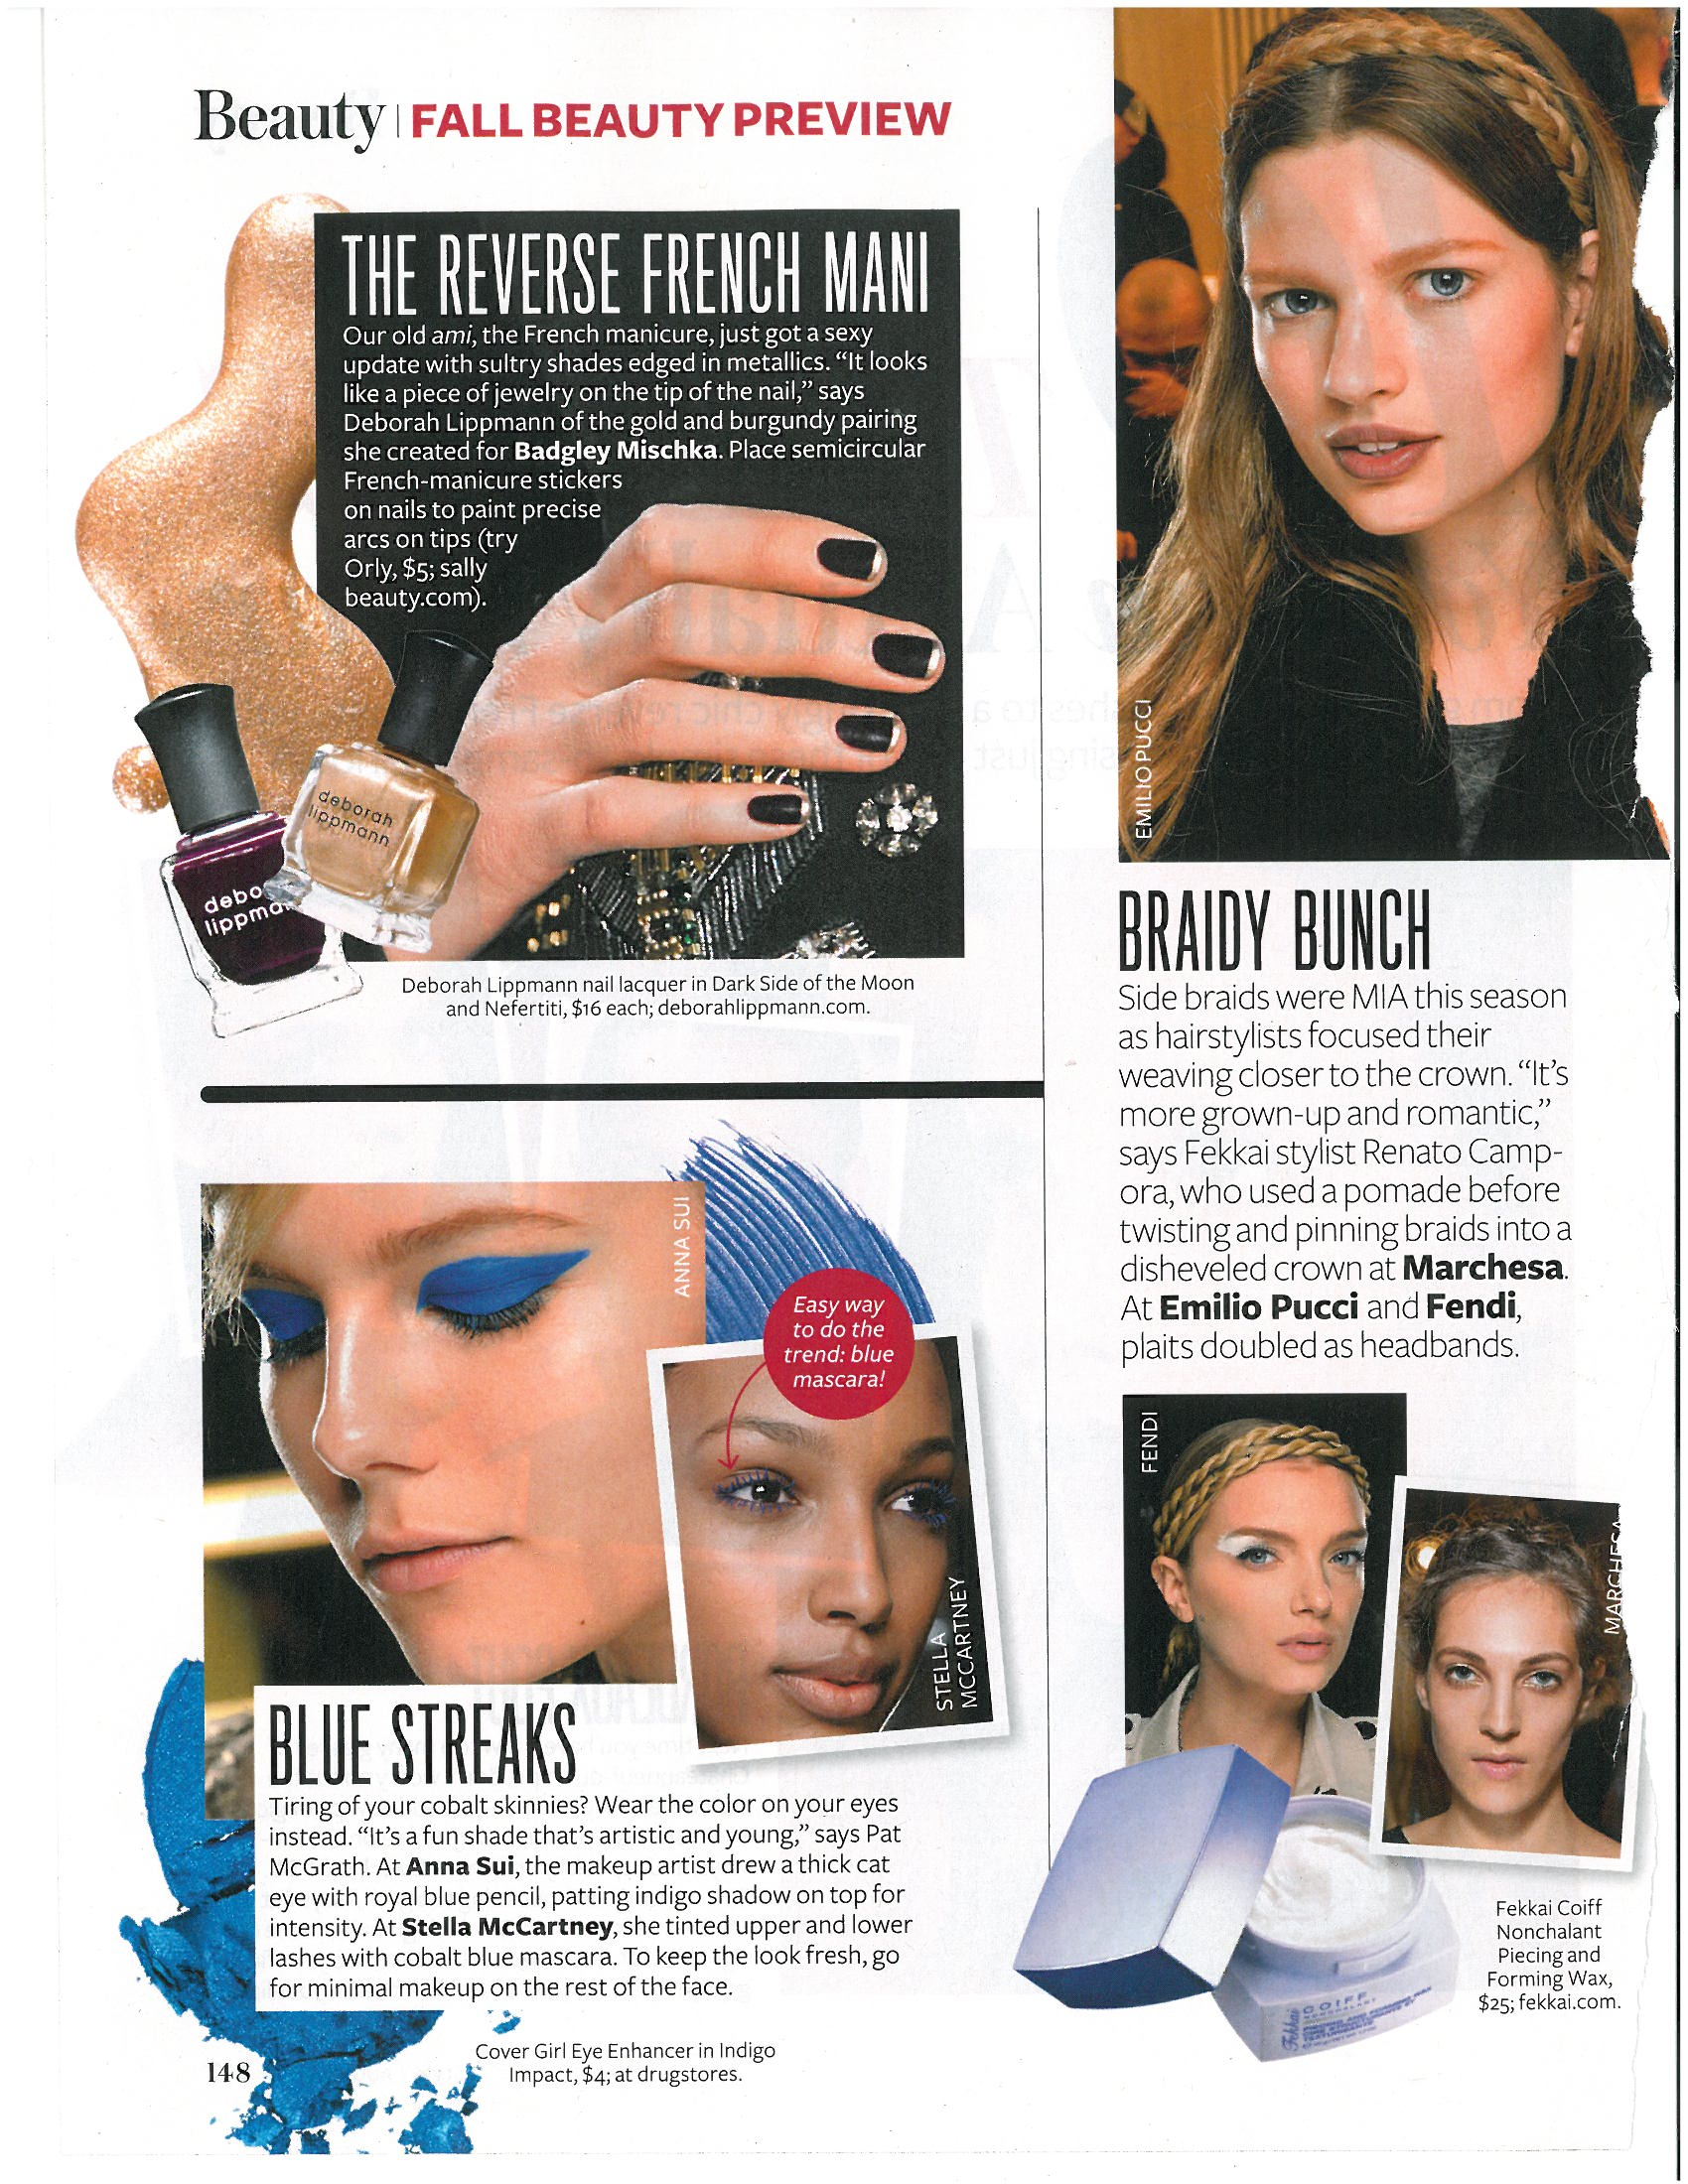 The Reverse French Mani